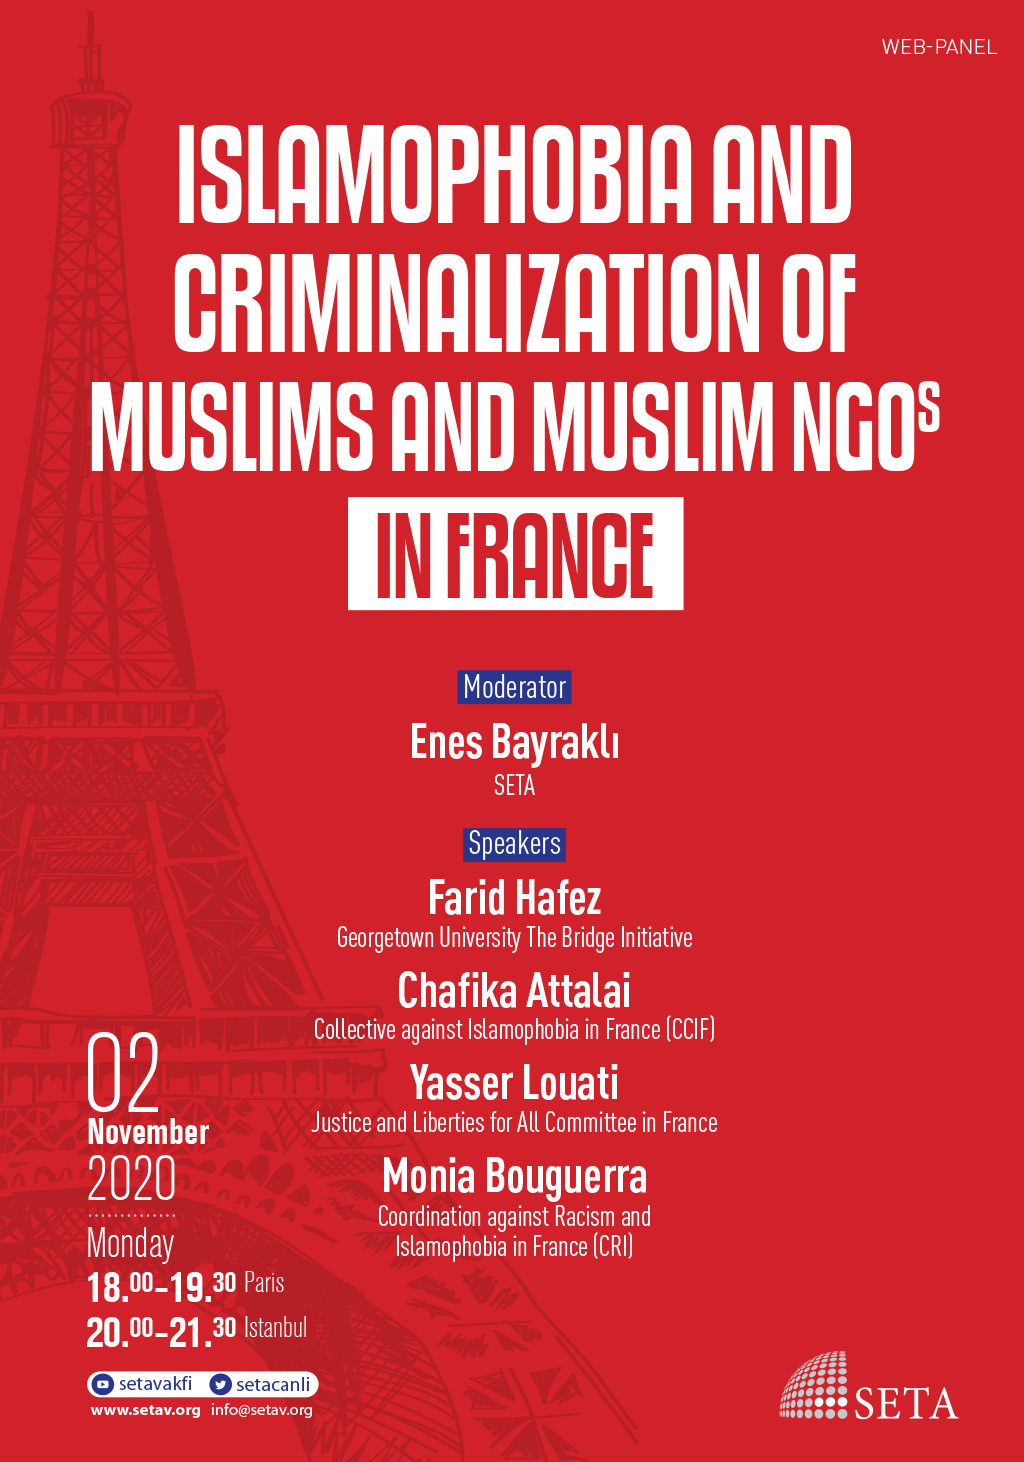 Web Panel: Islamophobia and Criminalization of Muslims and Muslim NGOs in France